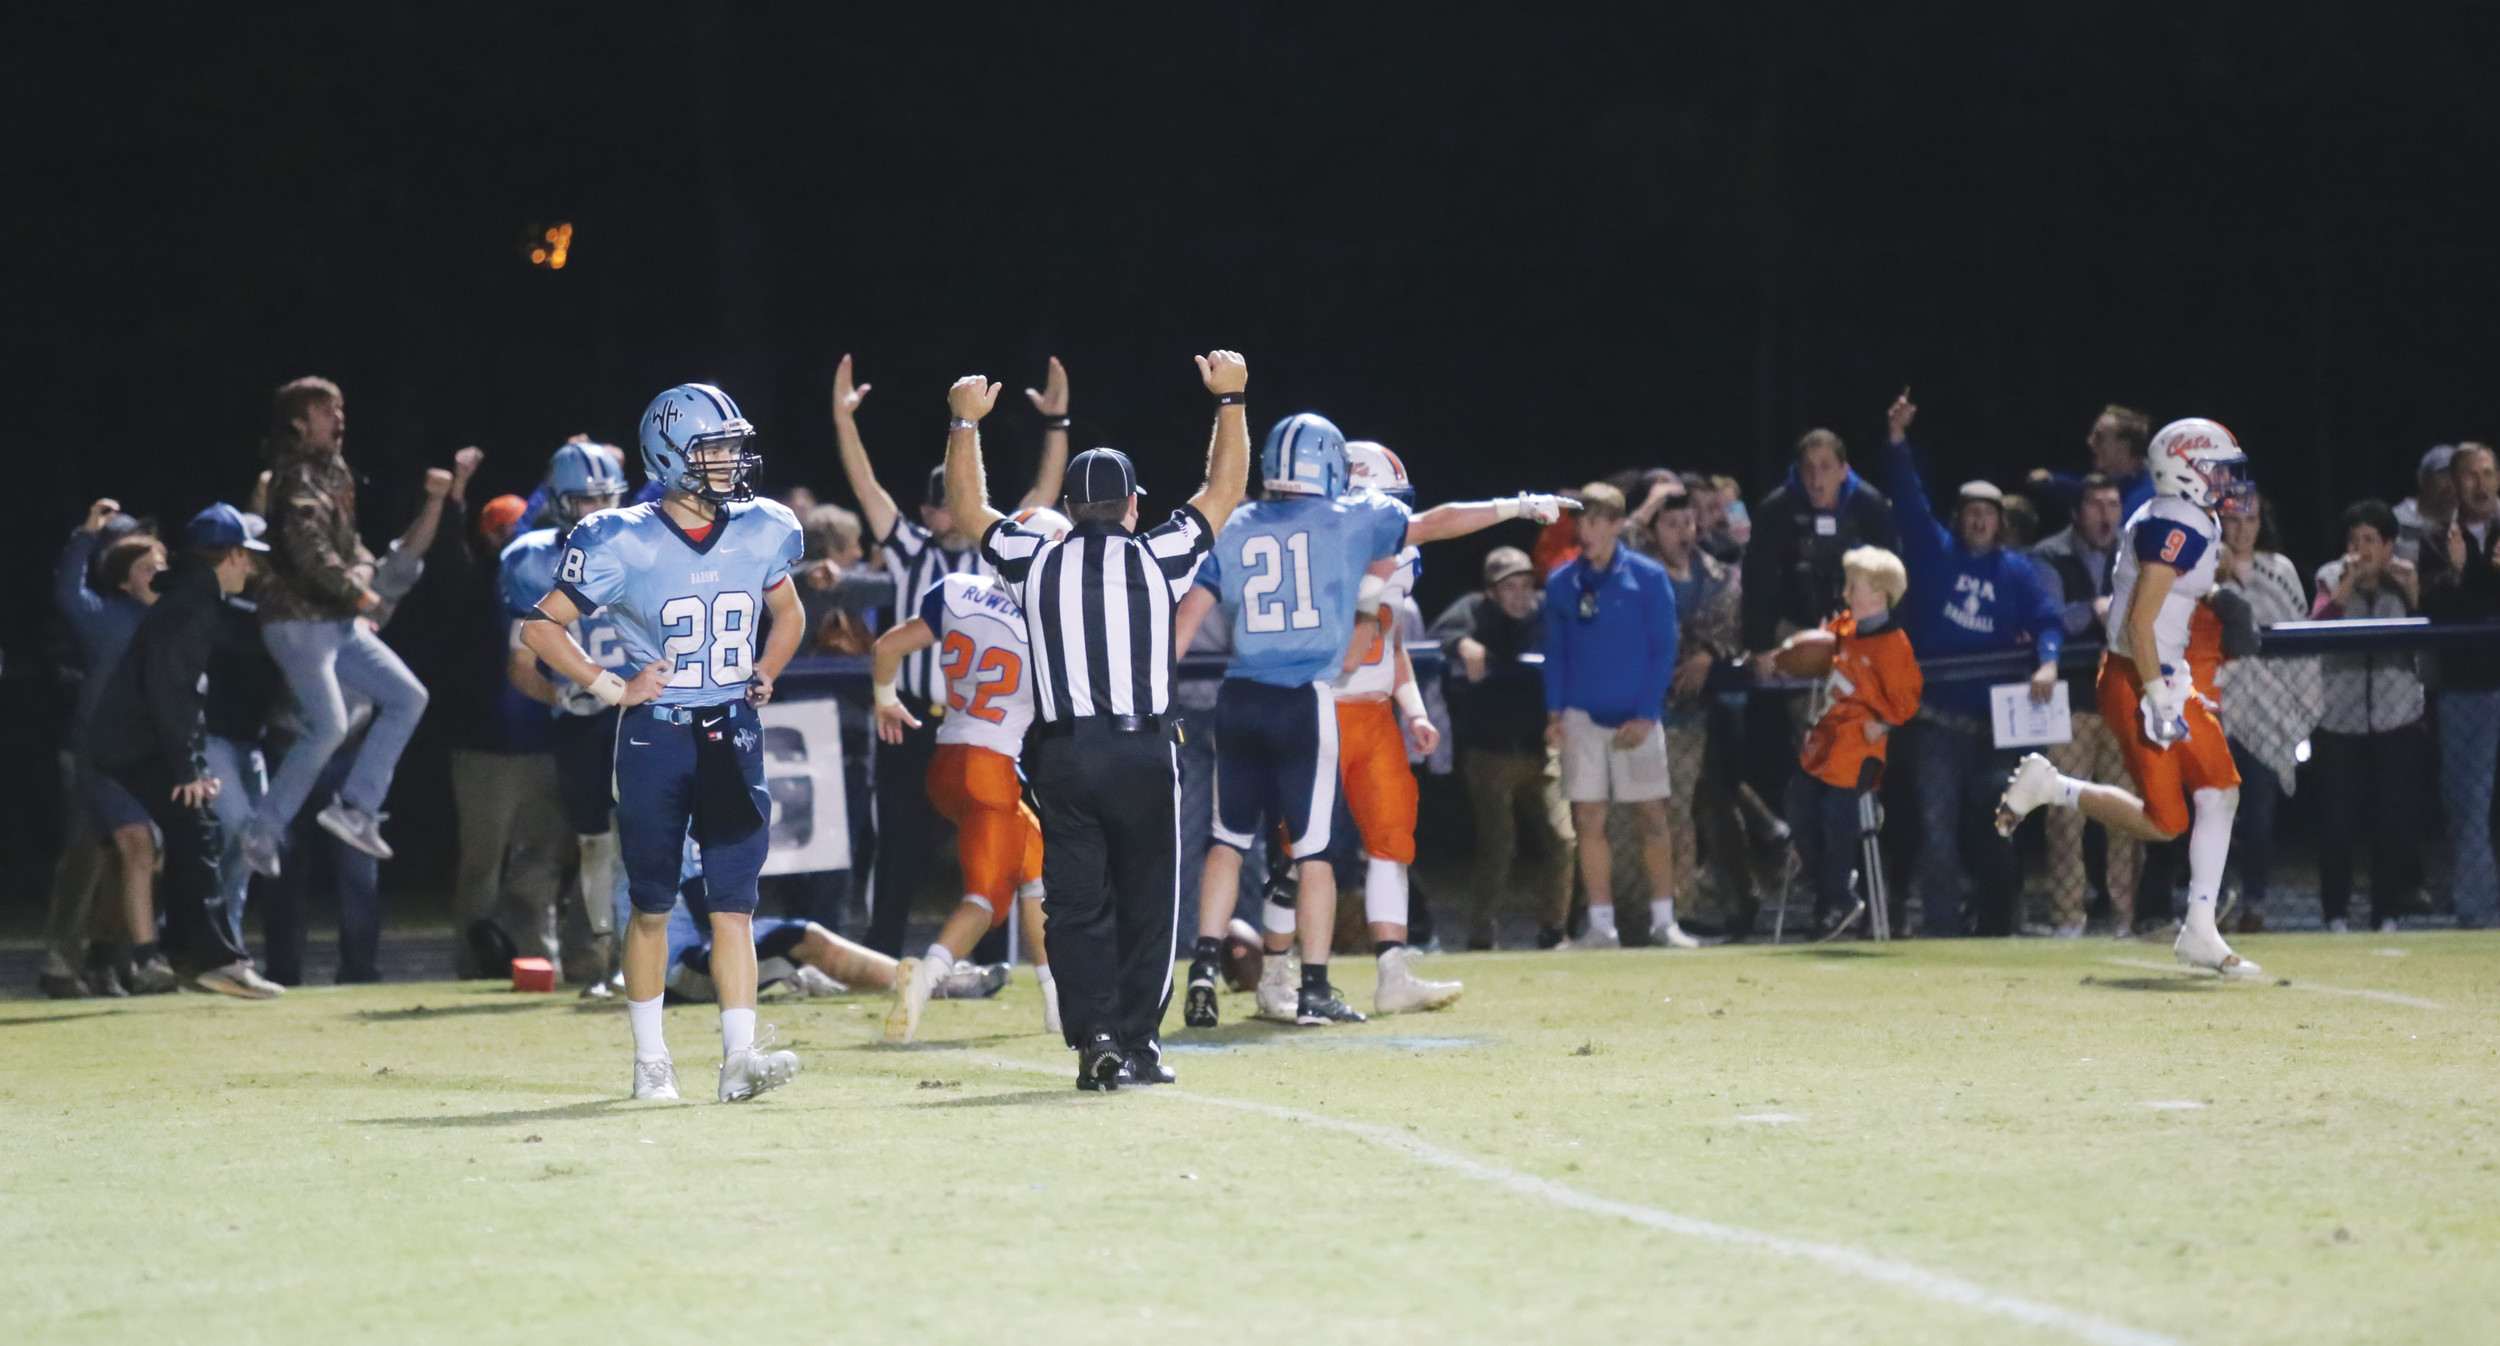 Laurence Manning faithful celebrate with the team along the sidelines after Taylor Lee's game-winning touchdown reception that gave the Swampcats a 14-13 victory over Wilson Hall on Friday at Spencer Field.